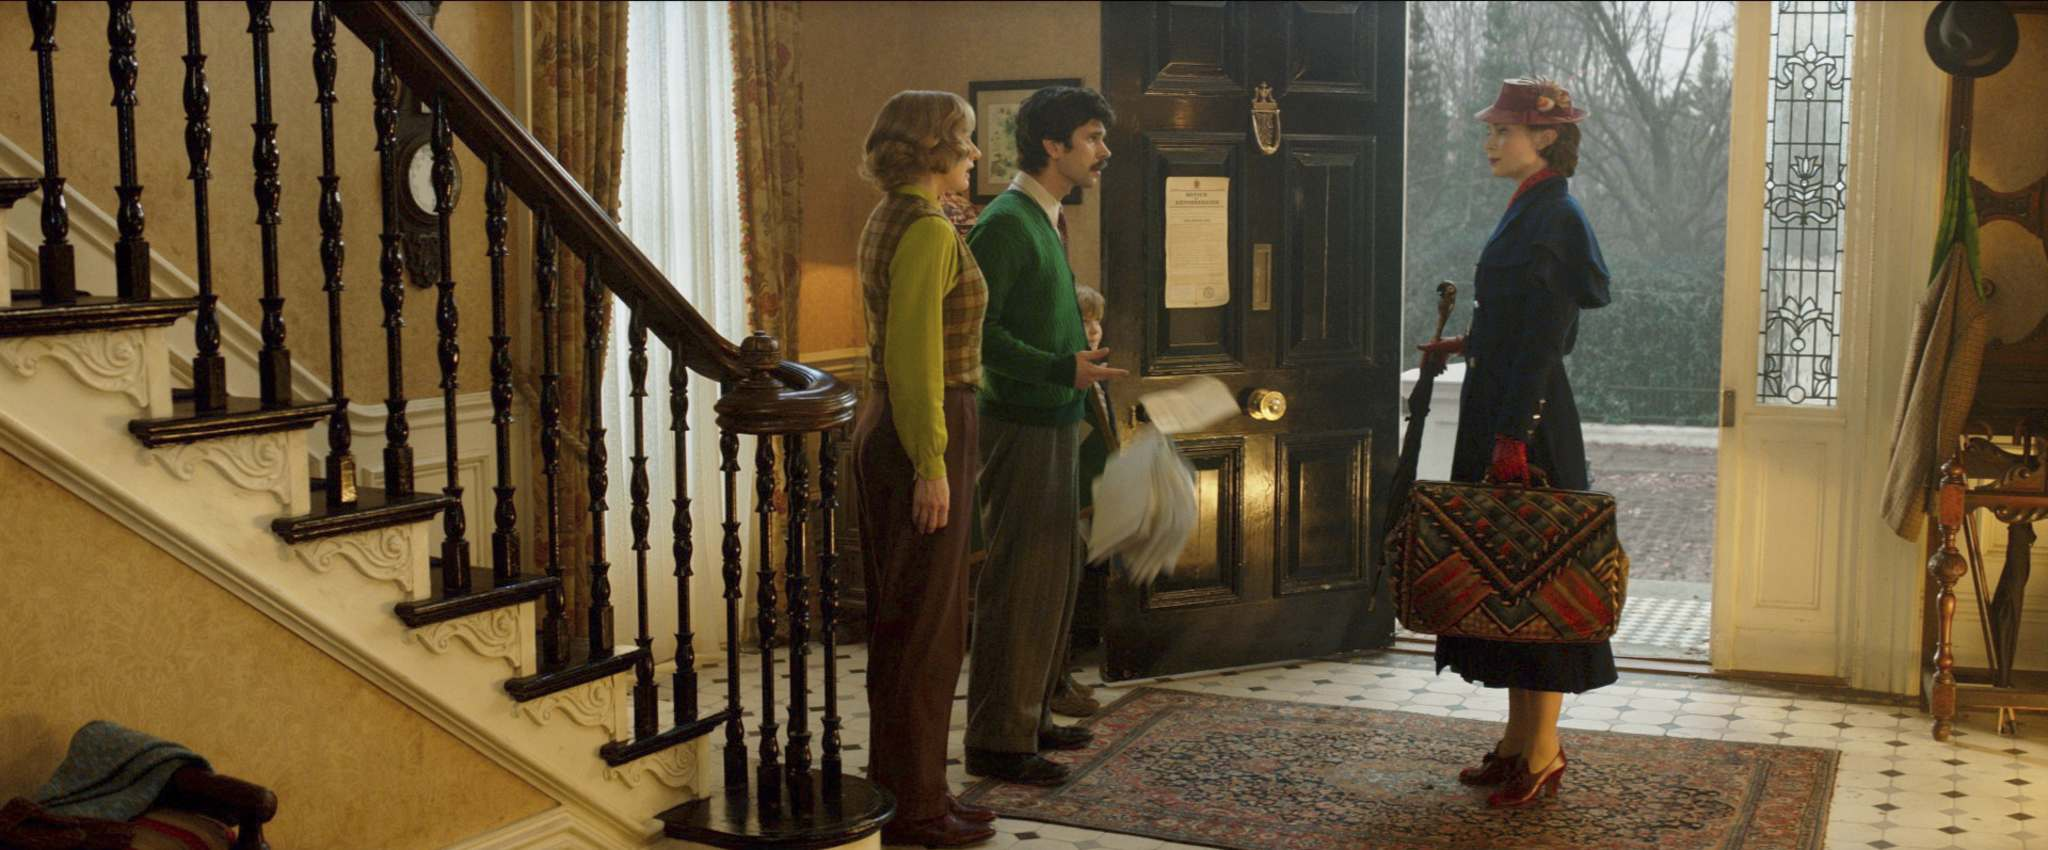 Emily Blunt (right) is Mary Poppins, who falls from out of the sky to again help the Banks family, Michael (Ben Whishaw, centre) and Jane (Emily Mortimer). (Disney)